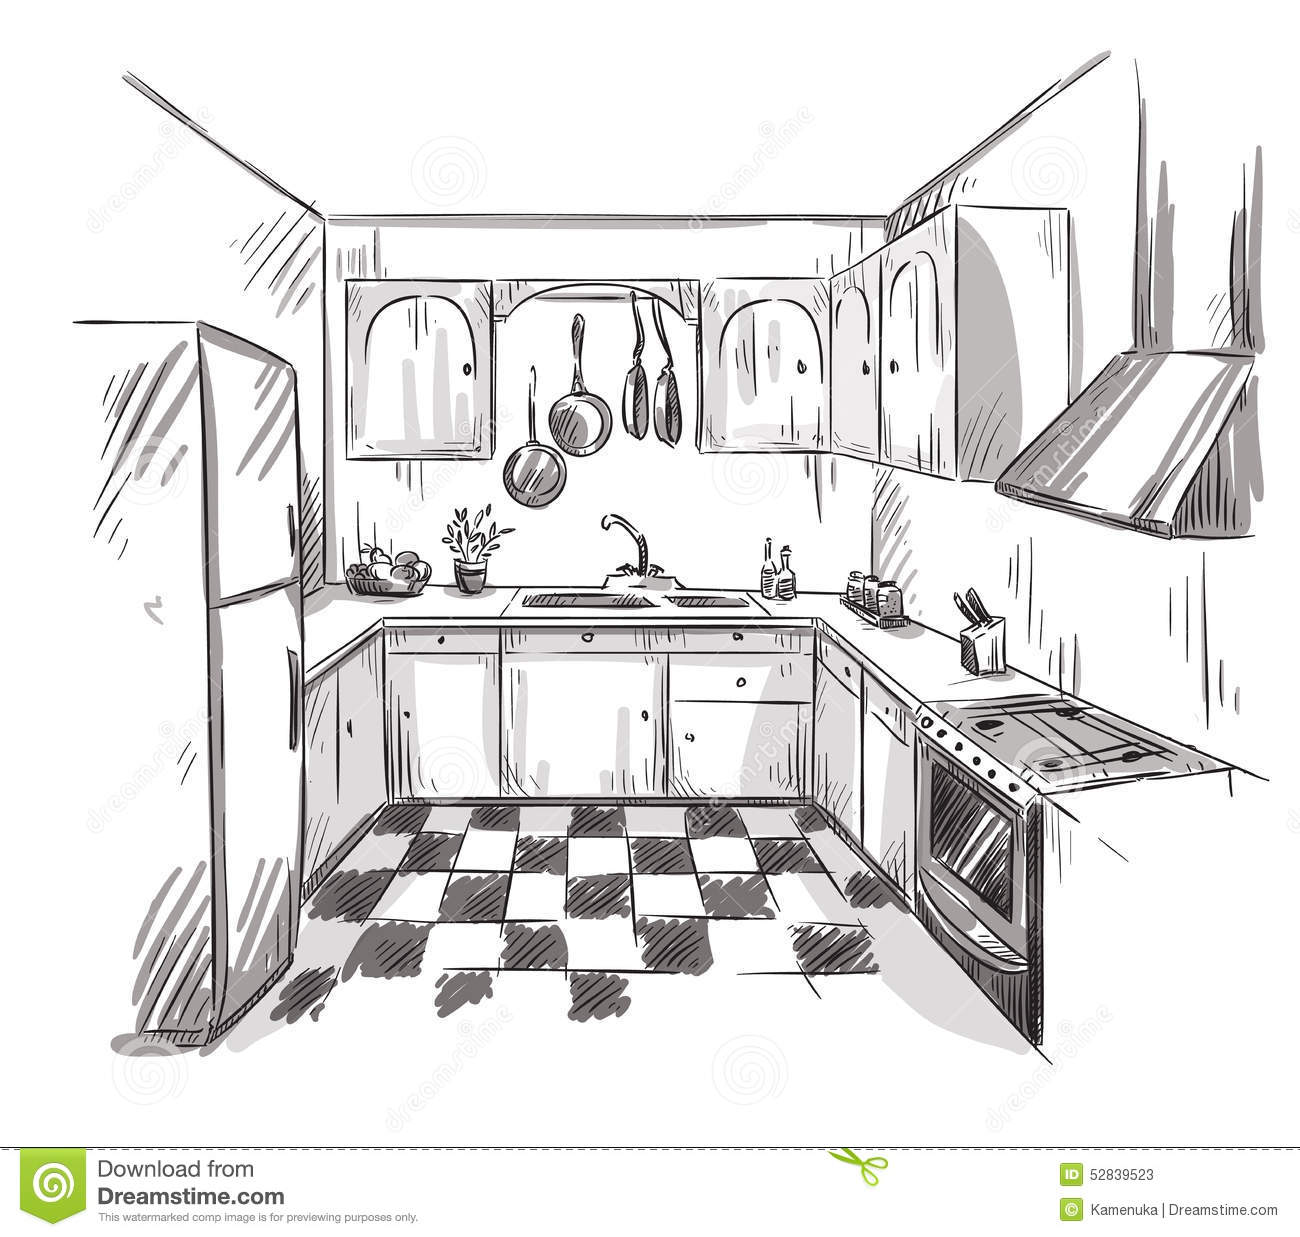 The Kitchen Sink Art Drawing Sketch Sketchbook By: Kitchen Interior Drawing, Vector Illustration Stock Vector